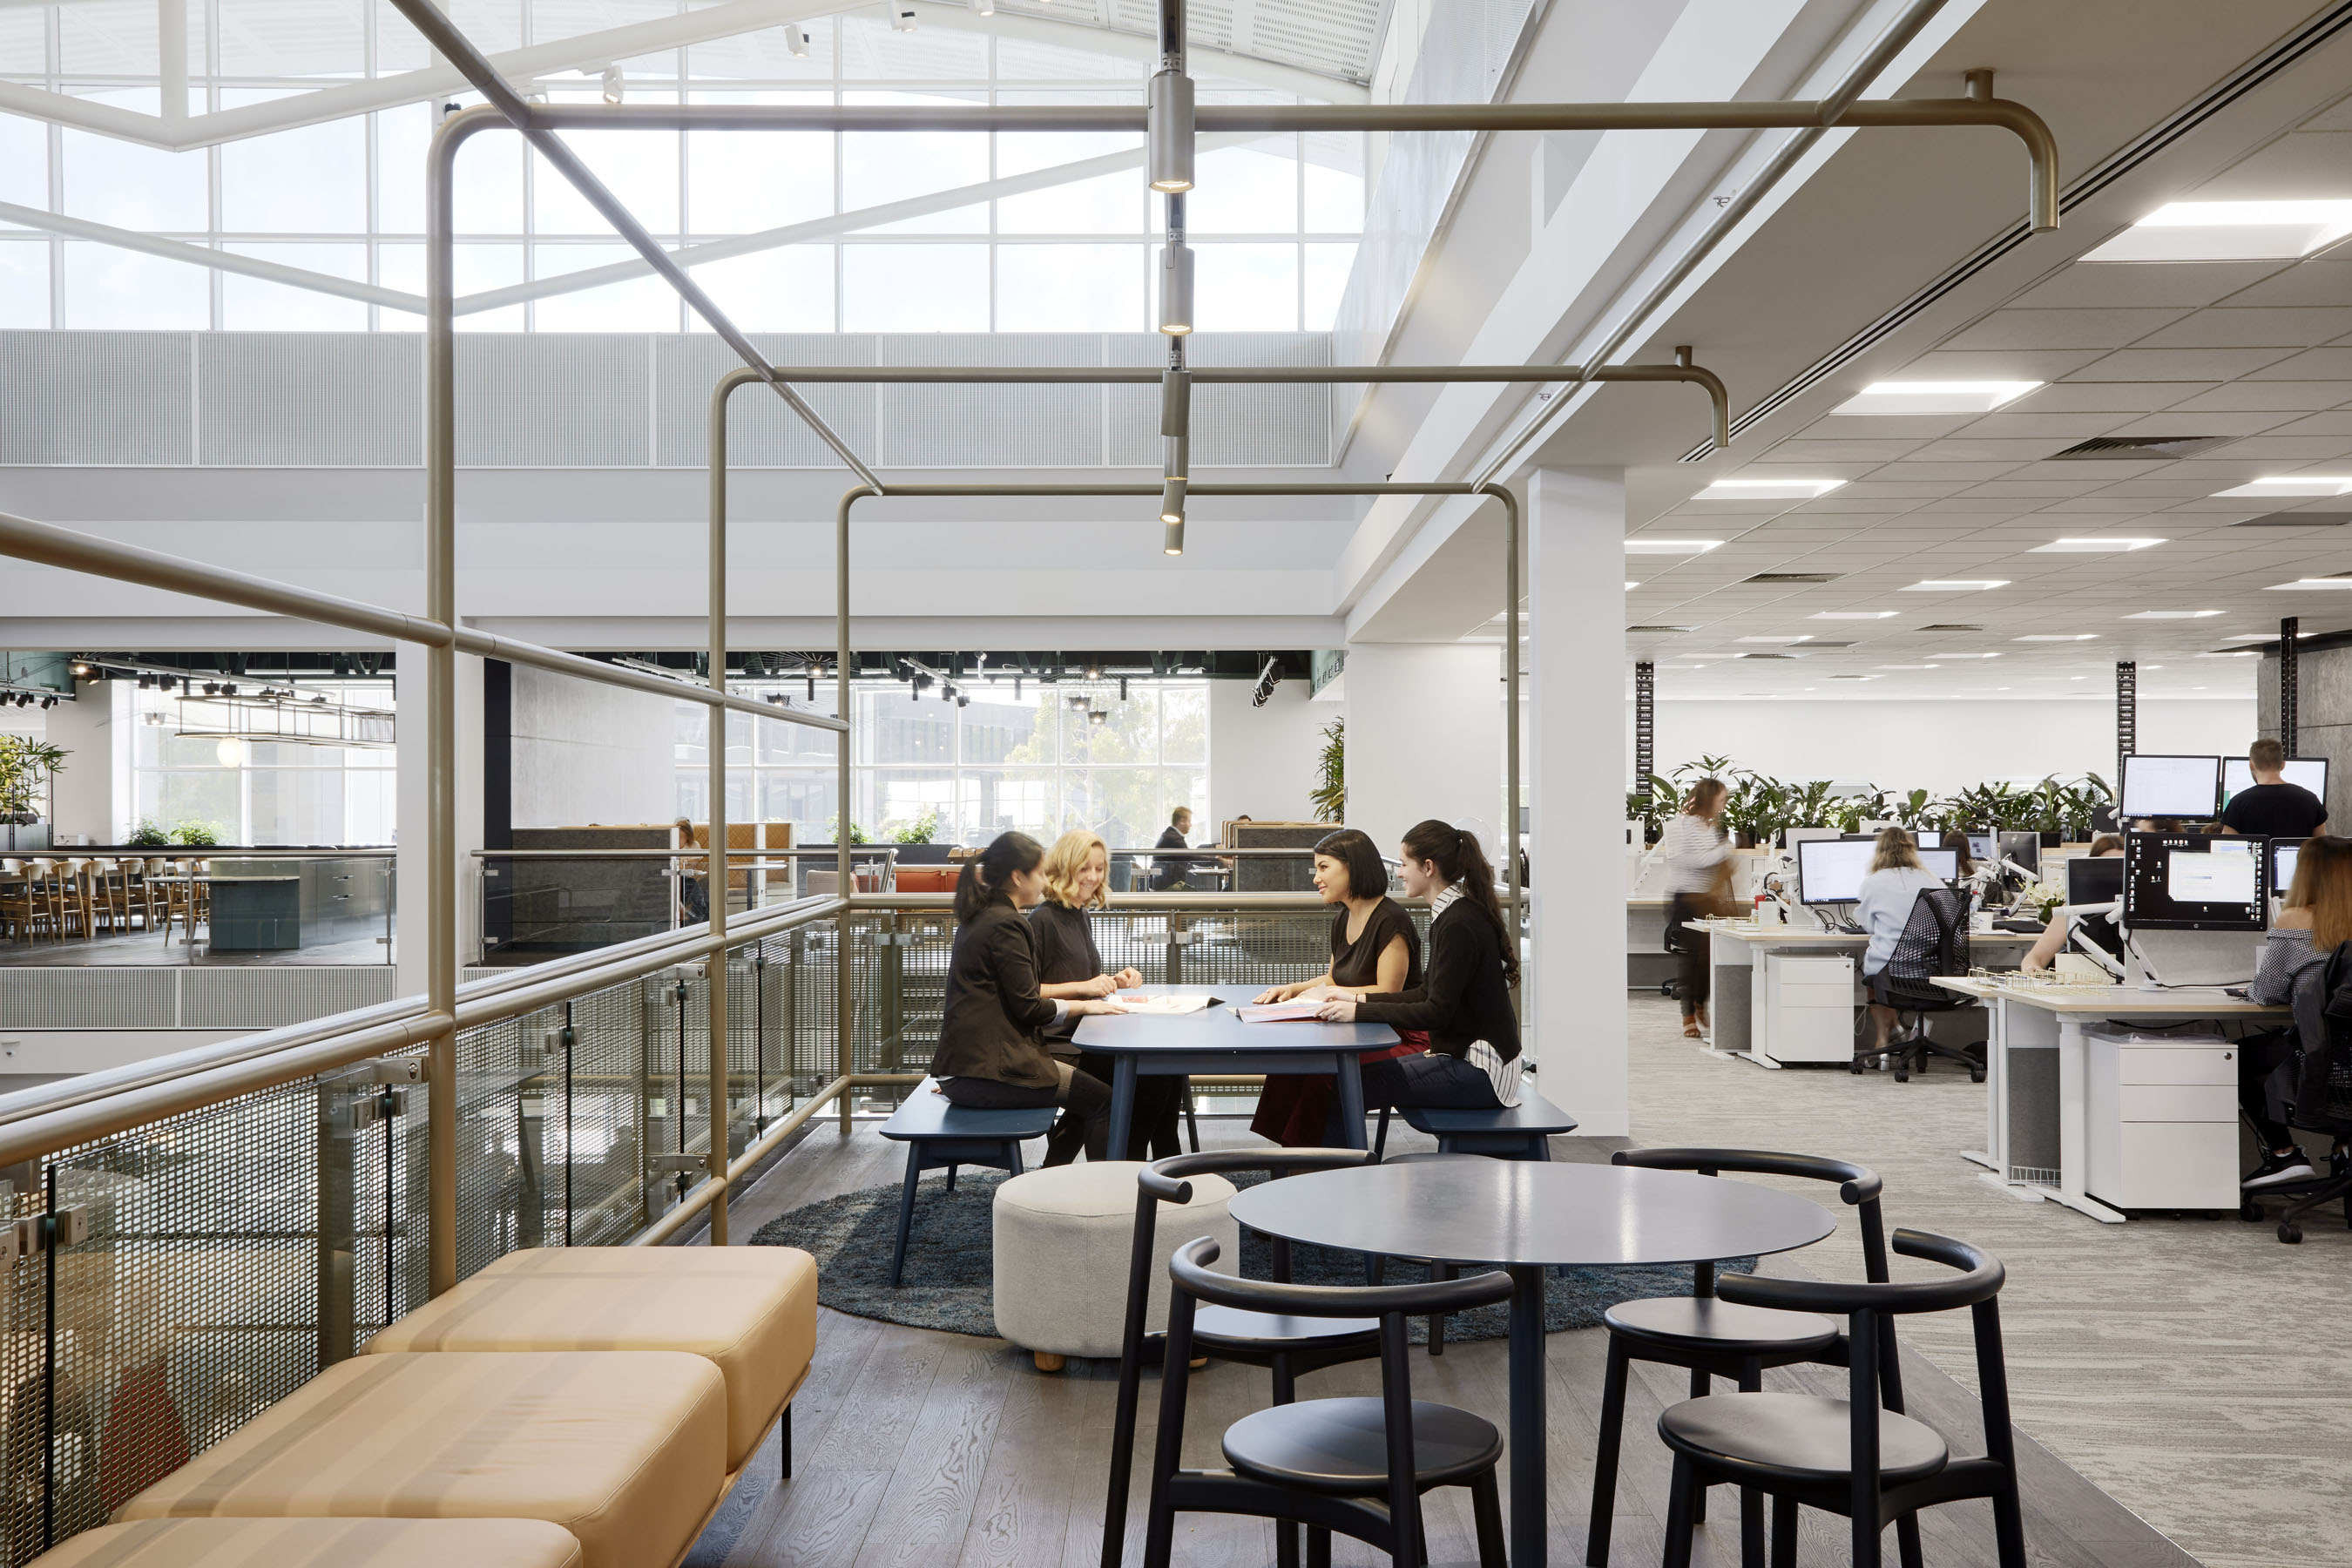 David Jones and Country Road Group Head Office by Gray Puksand